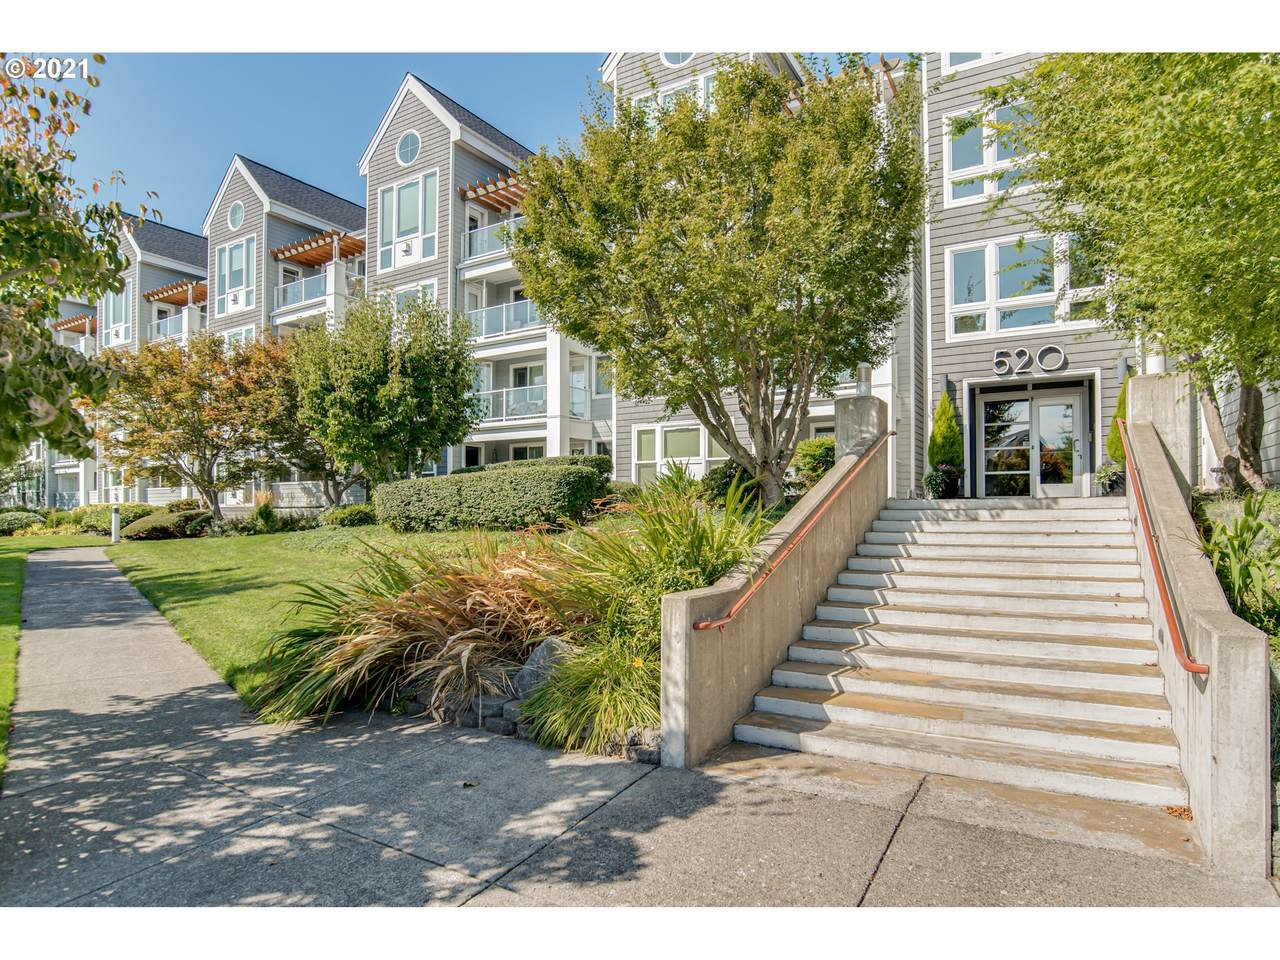 520 Columbia River Dr - Photo 1